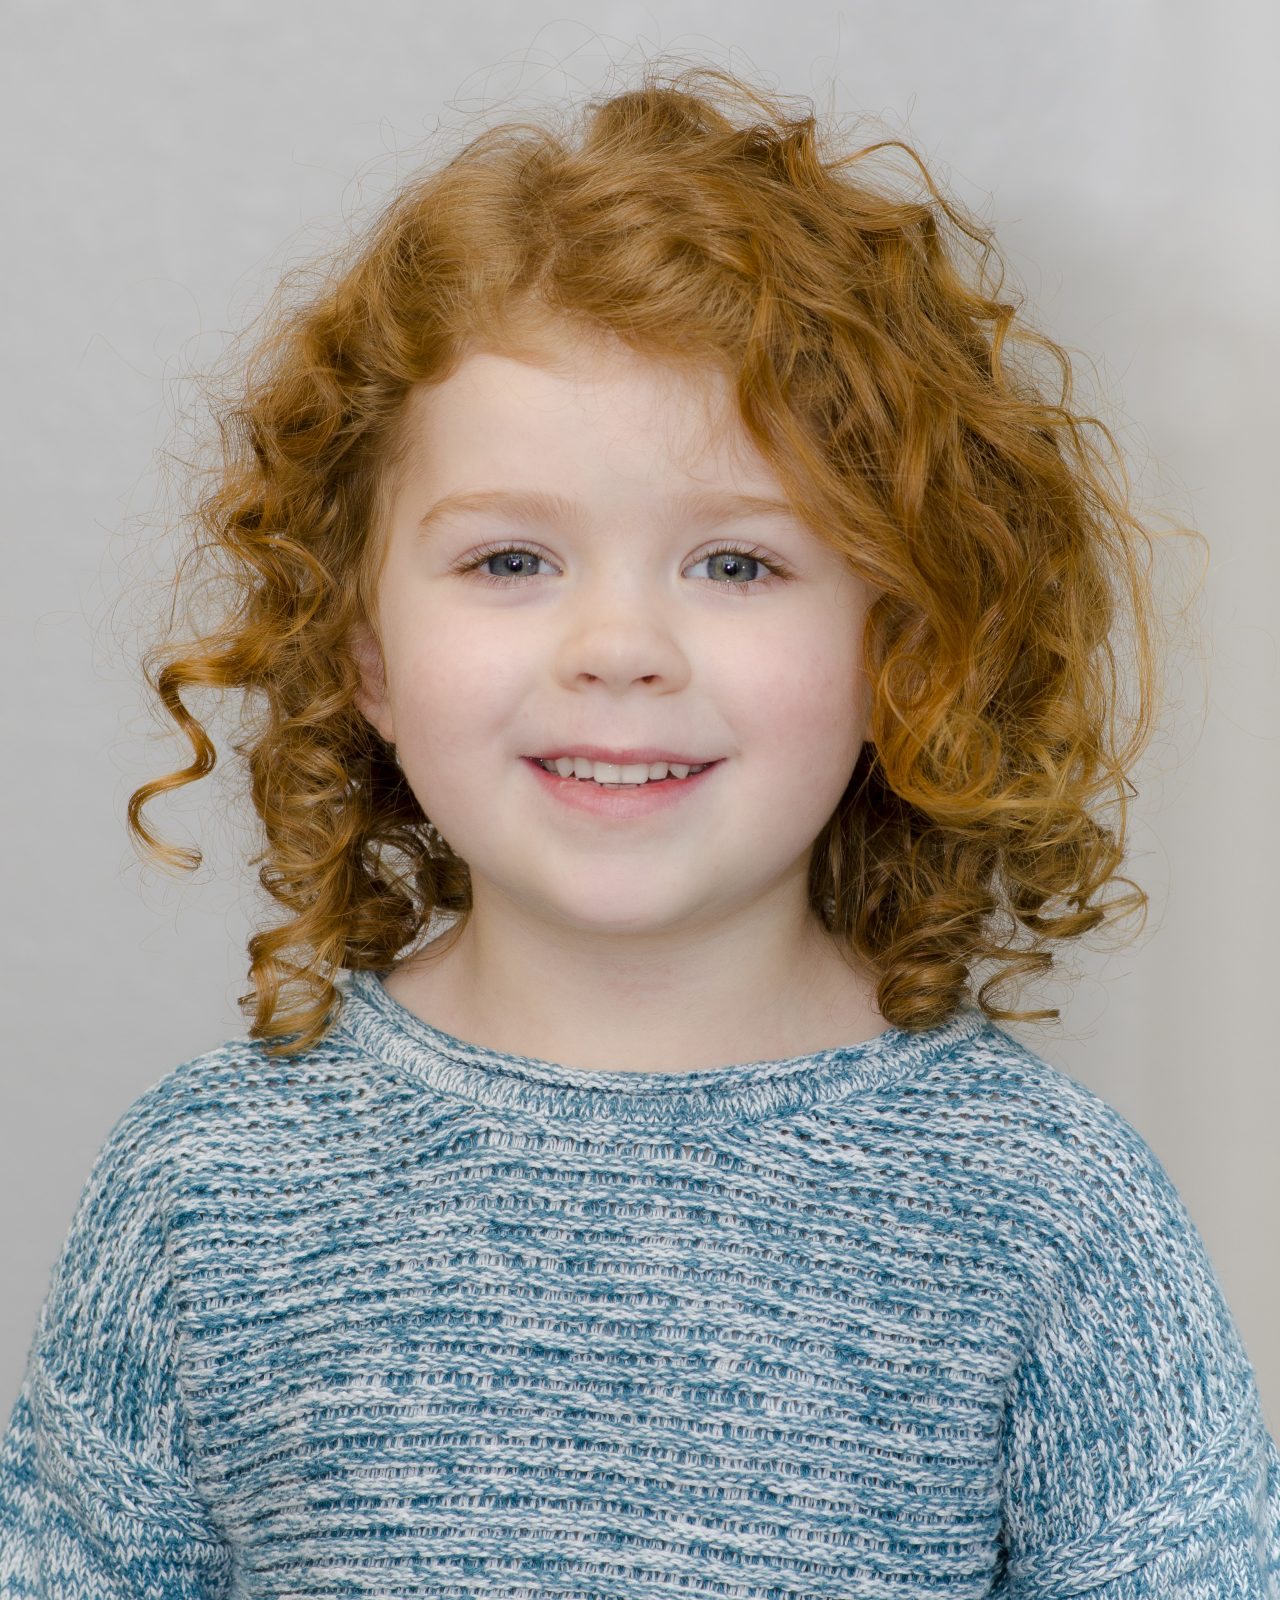 Everyday Hairstyles For Your Kid With Curly Hair With Video Tutorial Allmomdoes